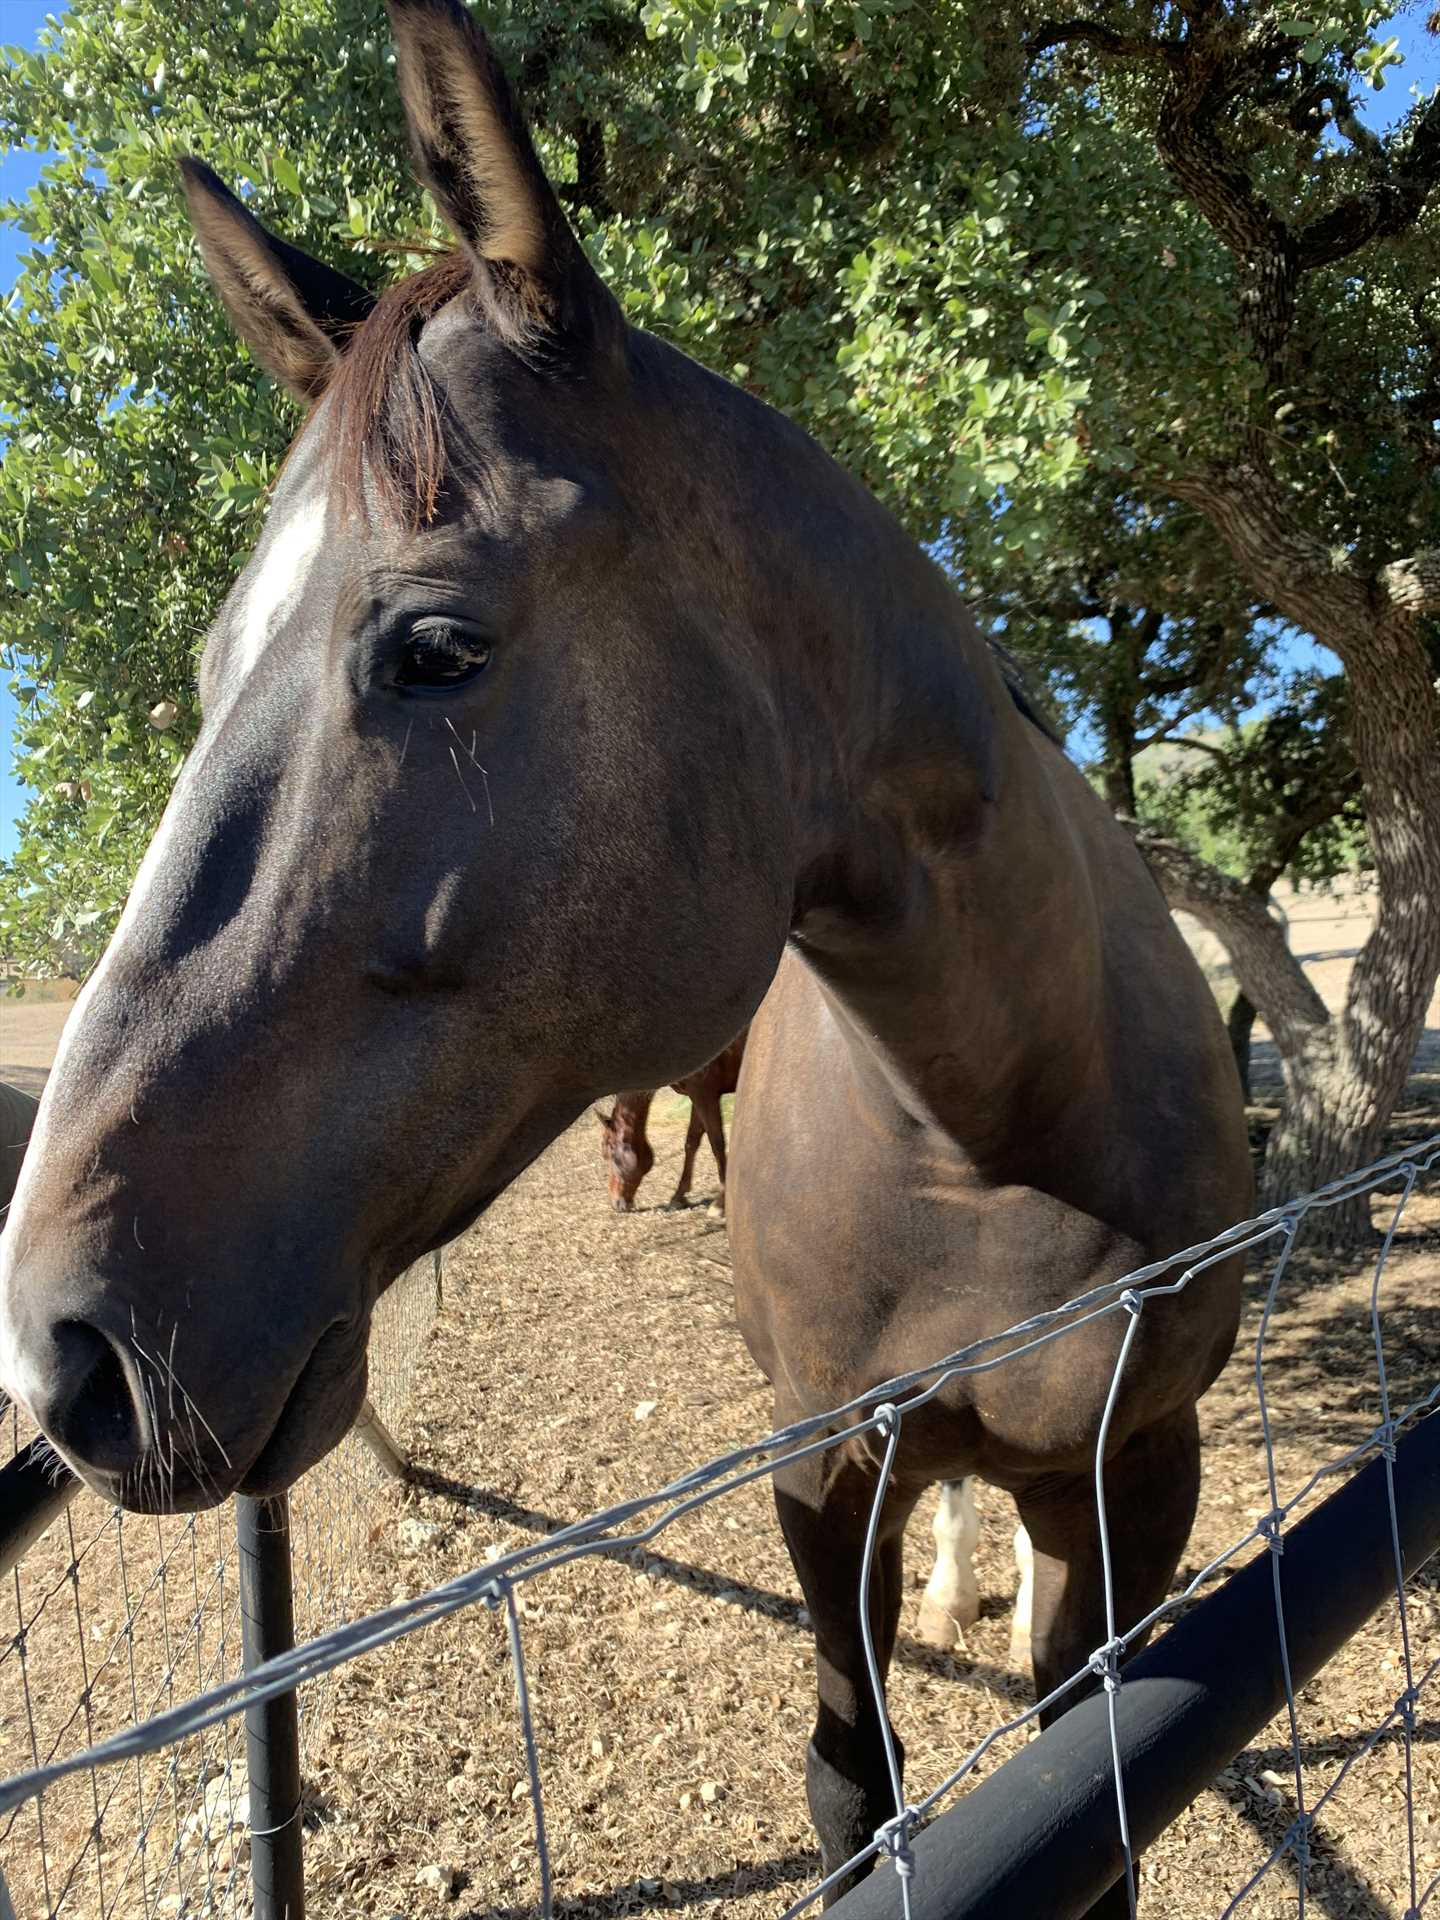 Tabasco Ranch is a paradise for folks who love horses! There are also facilities here if you'd like to bring your own.